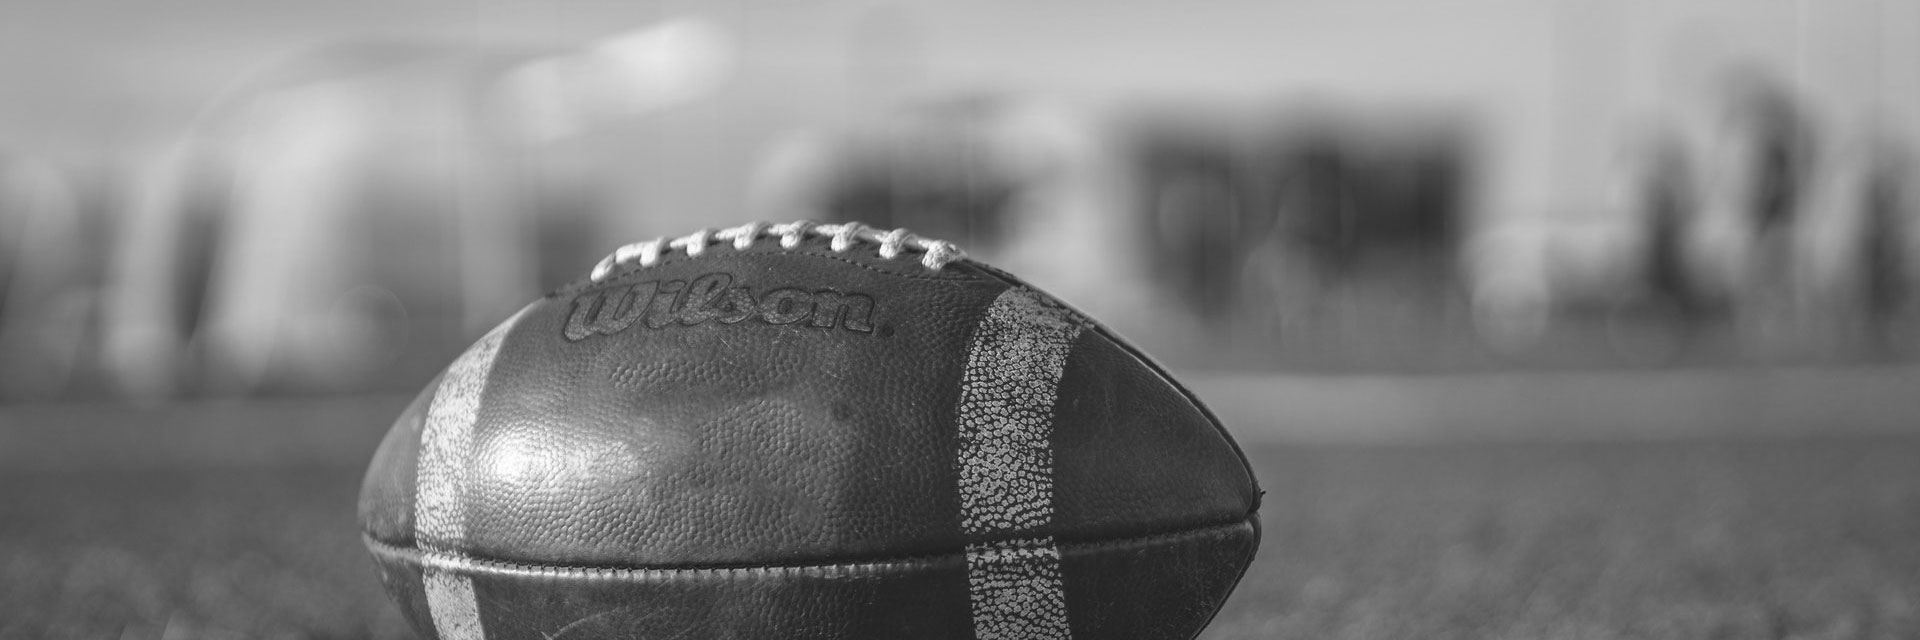 black and white photo of football sitting on field